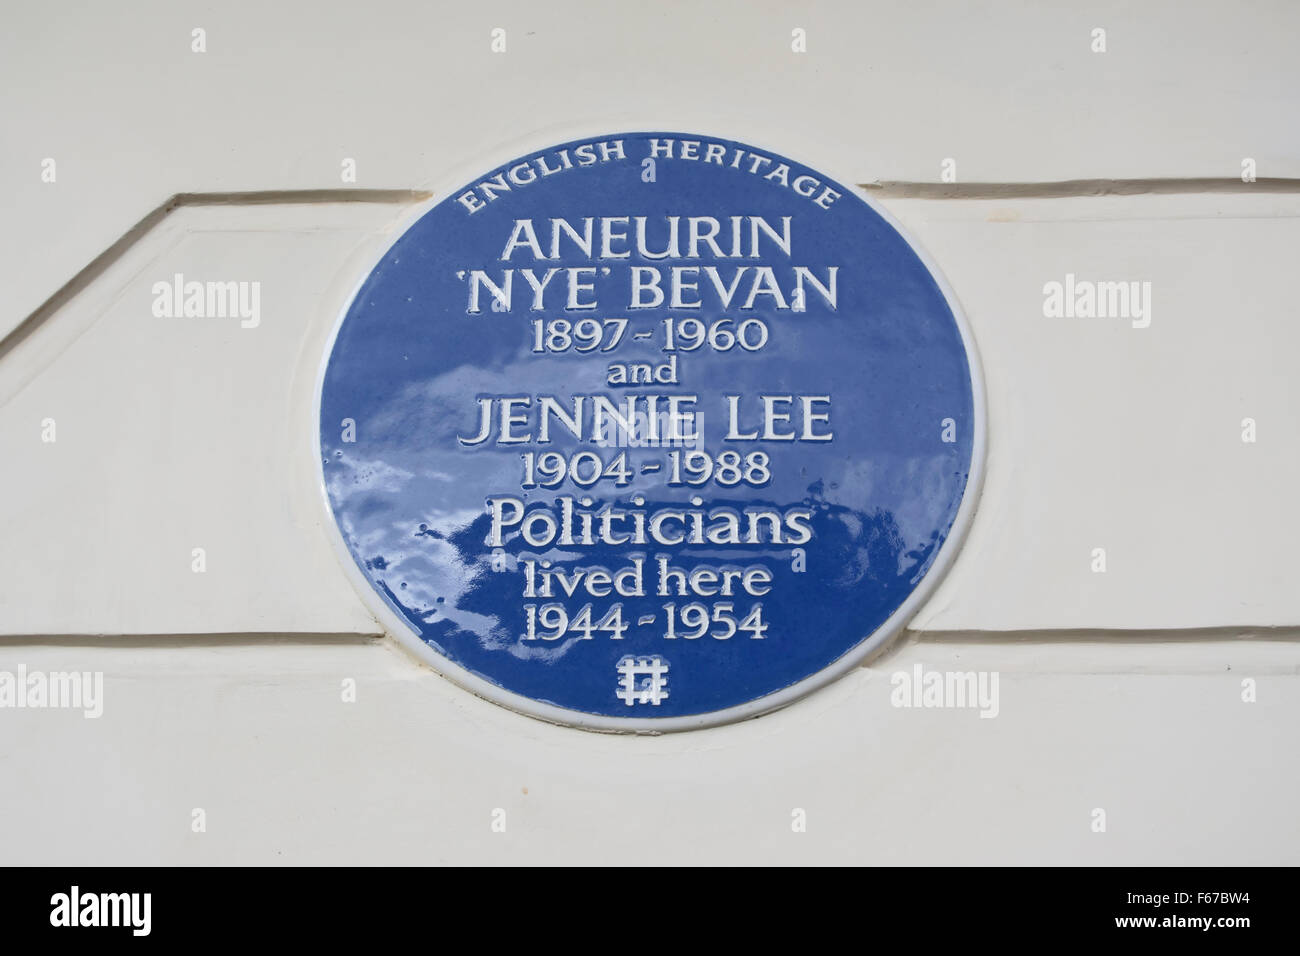 english heritage blue plaque marking a  home of politicians aneurin 'nye' bevan and jennie lee, in belgravia, london, Stock Photo